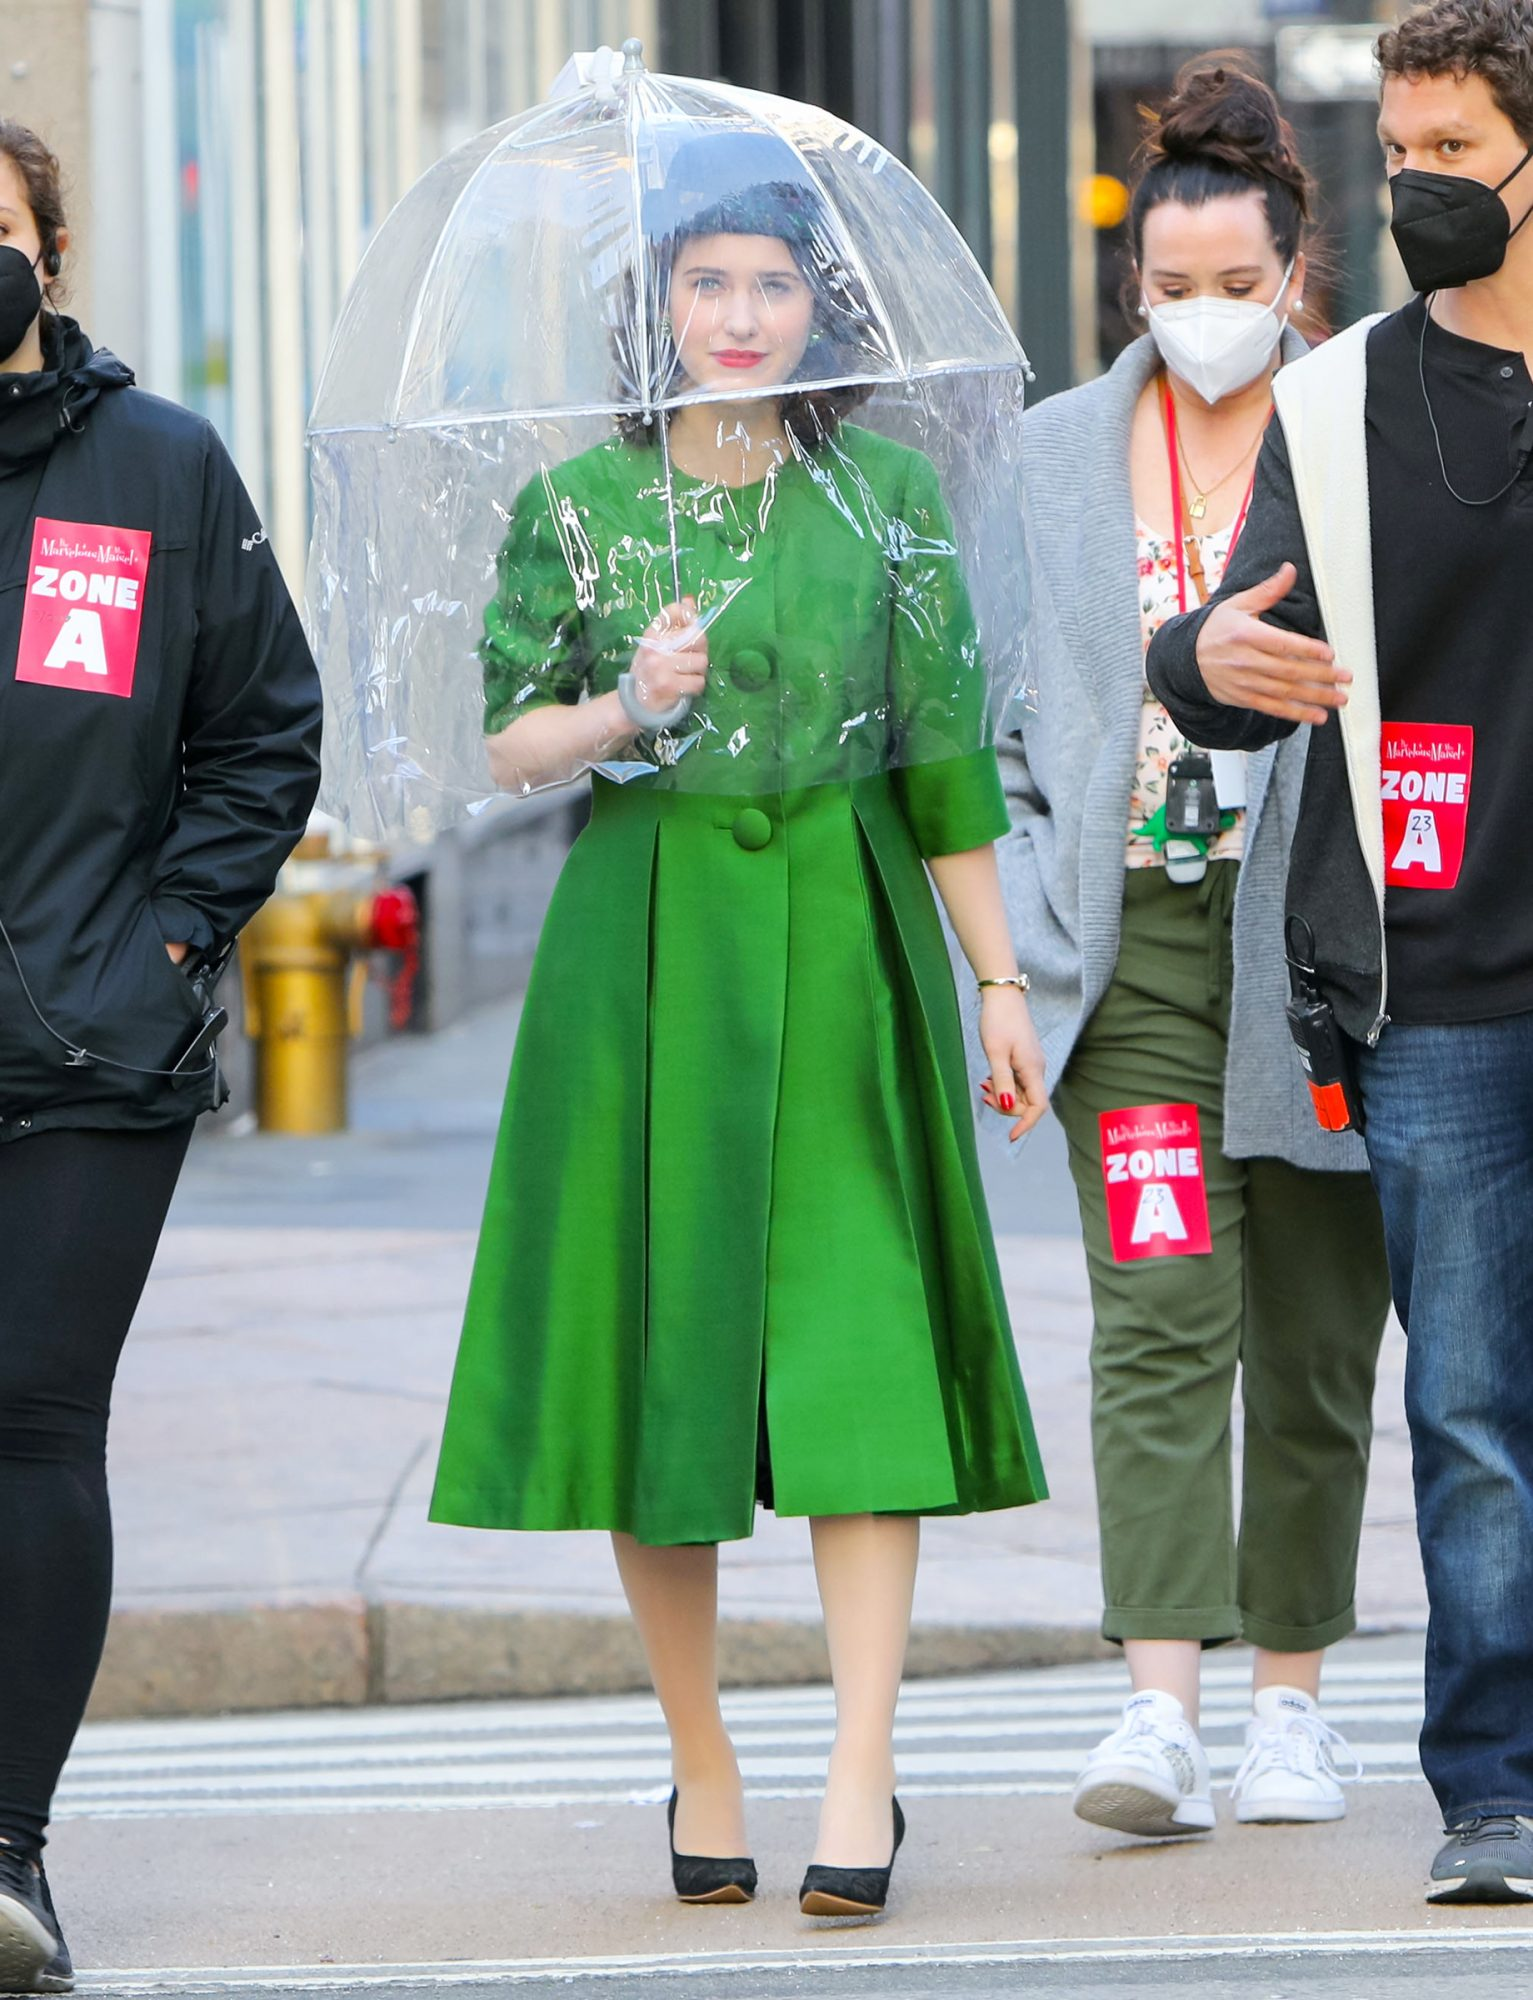 Rachel Brosnahan is seen at the film set of the 'The Marvelous Mrs. Maisel' TV Series on March 23, 2021